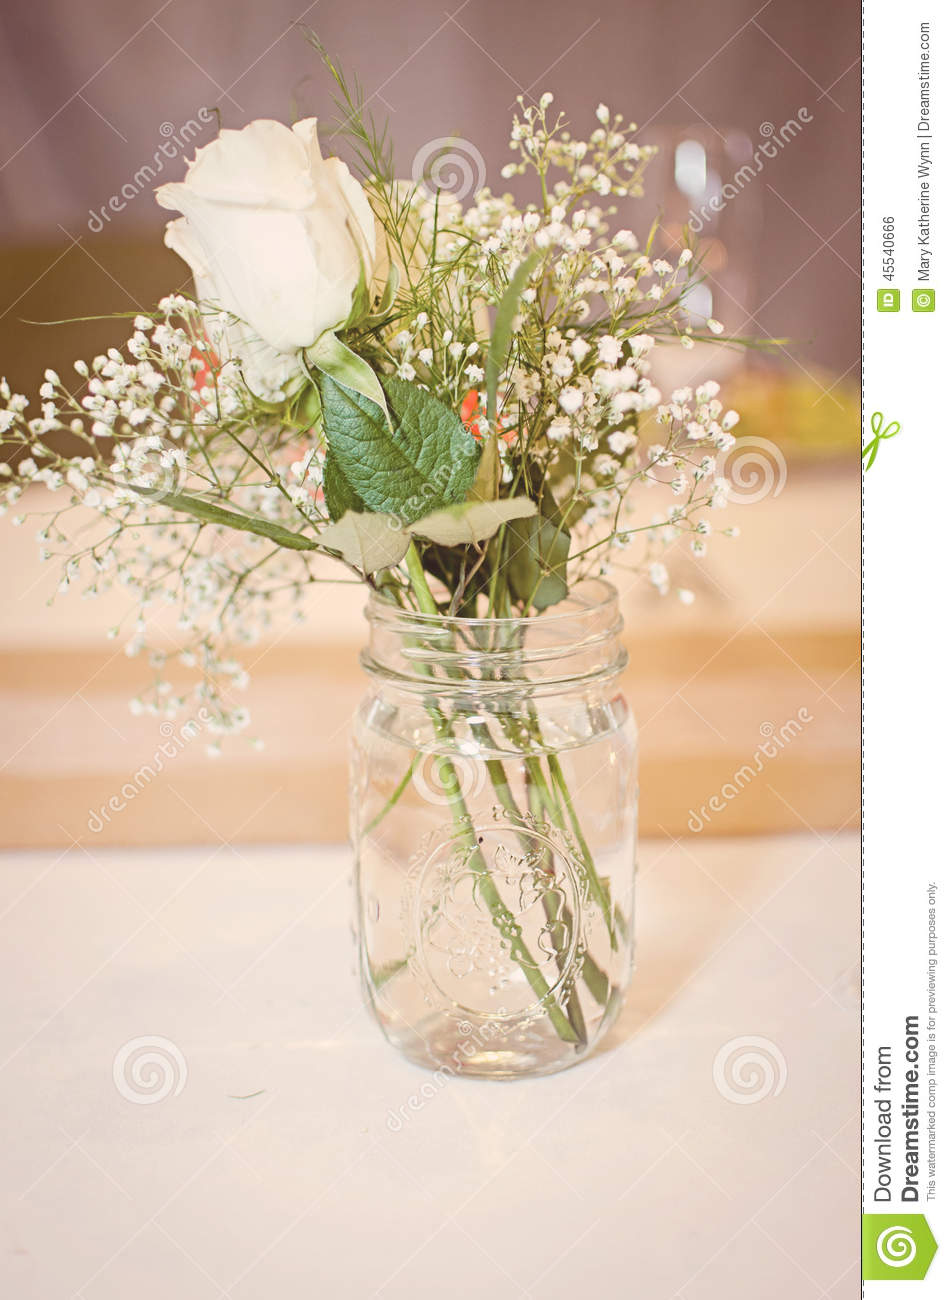 Mason jar bouquet stock photo Image of cloth arrangement  : mason jar bouquet flower arrangement table party wedding reception 45540666 from www.dreamstime.com size 951 x 1300 jpeg 128kB